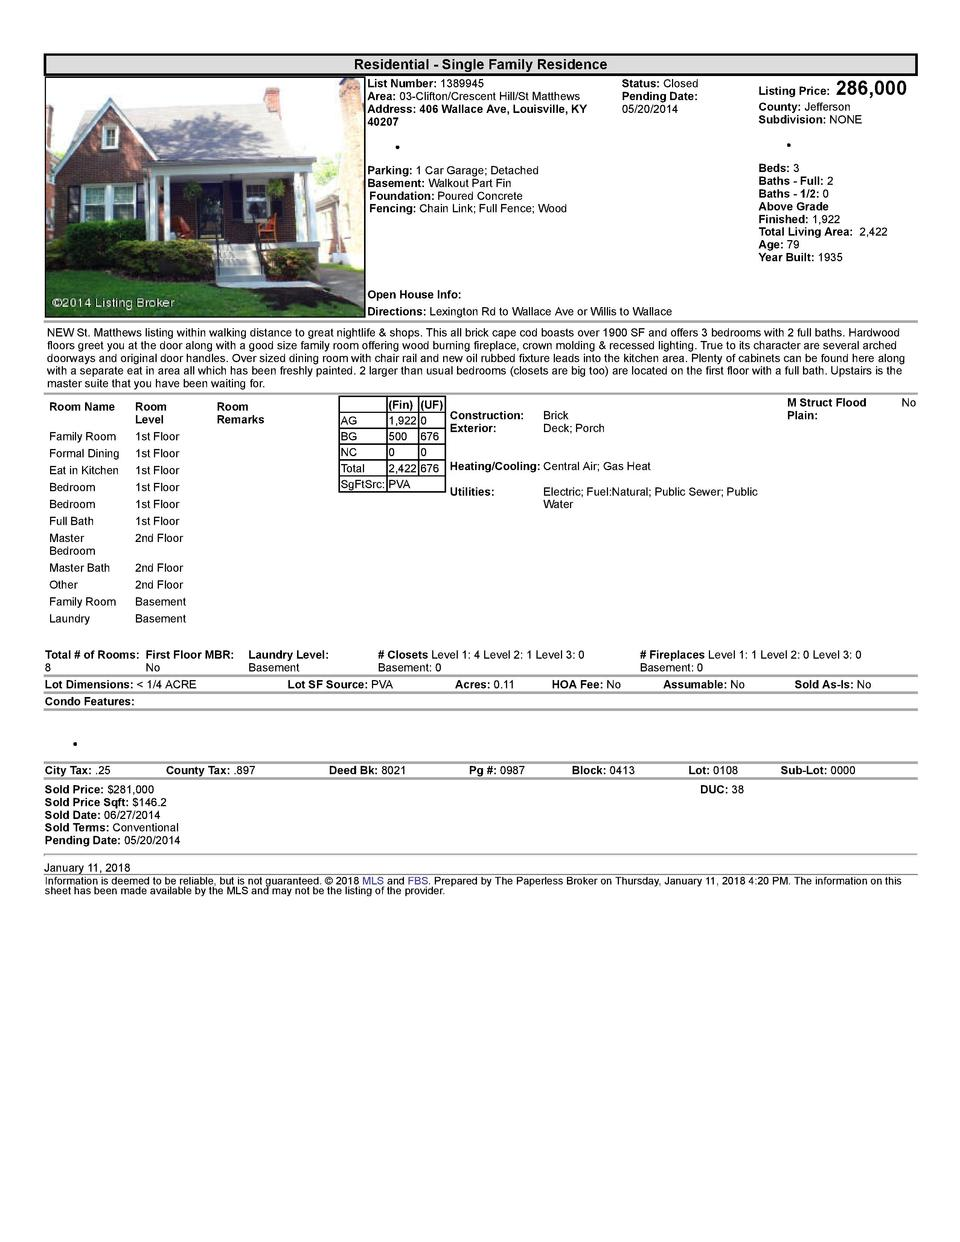 Homes We Ve Sold Parker Klein Real Estate